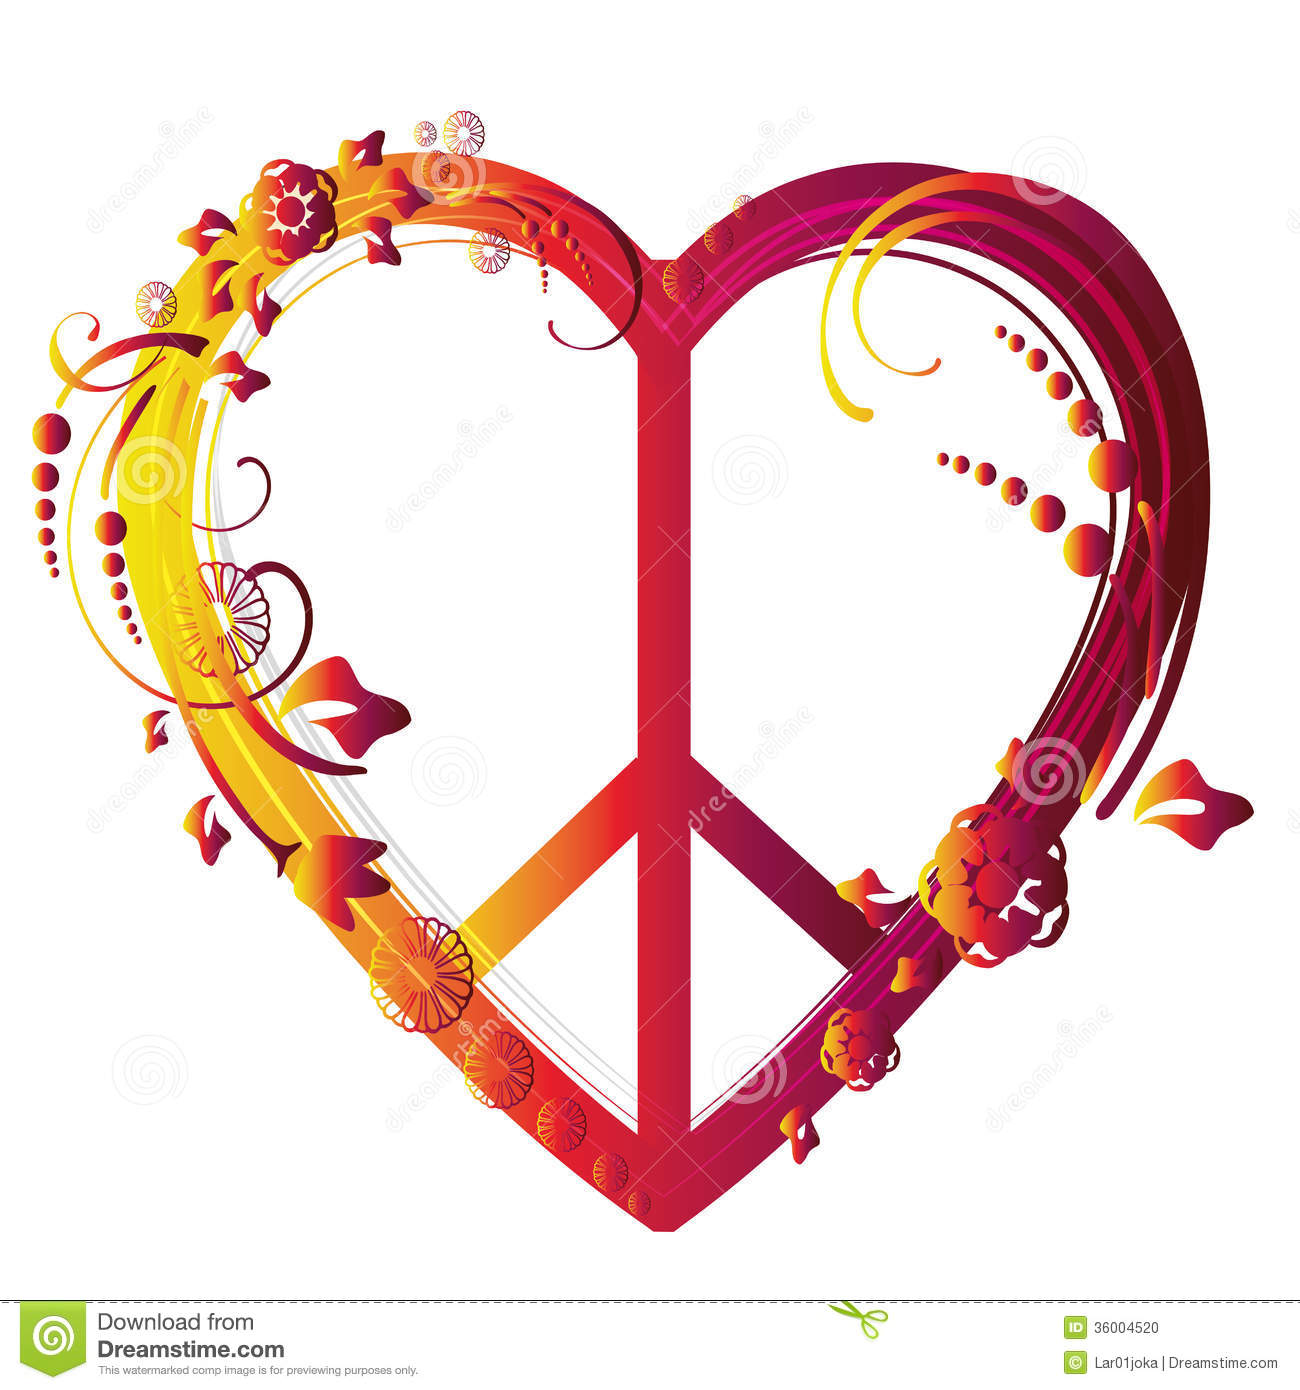 Heart Peace Symbol Stock Vector Illustration Of Colorful 36004520